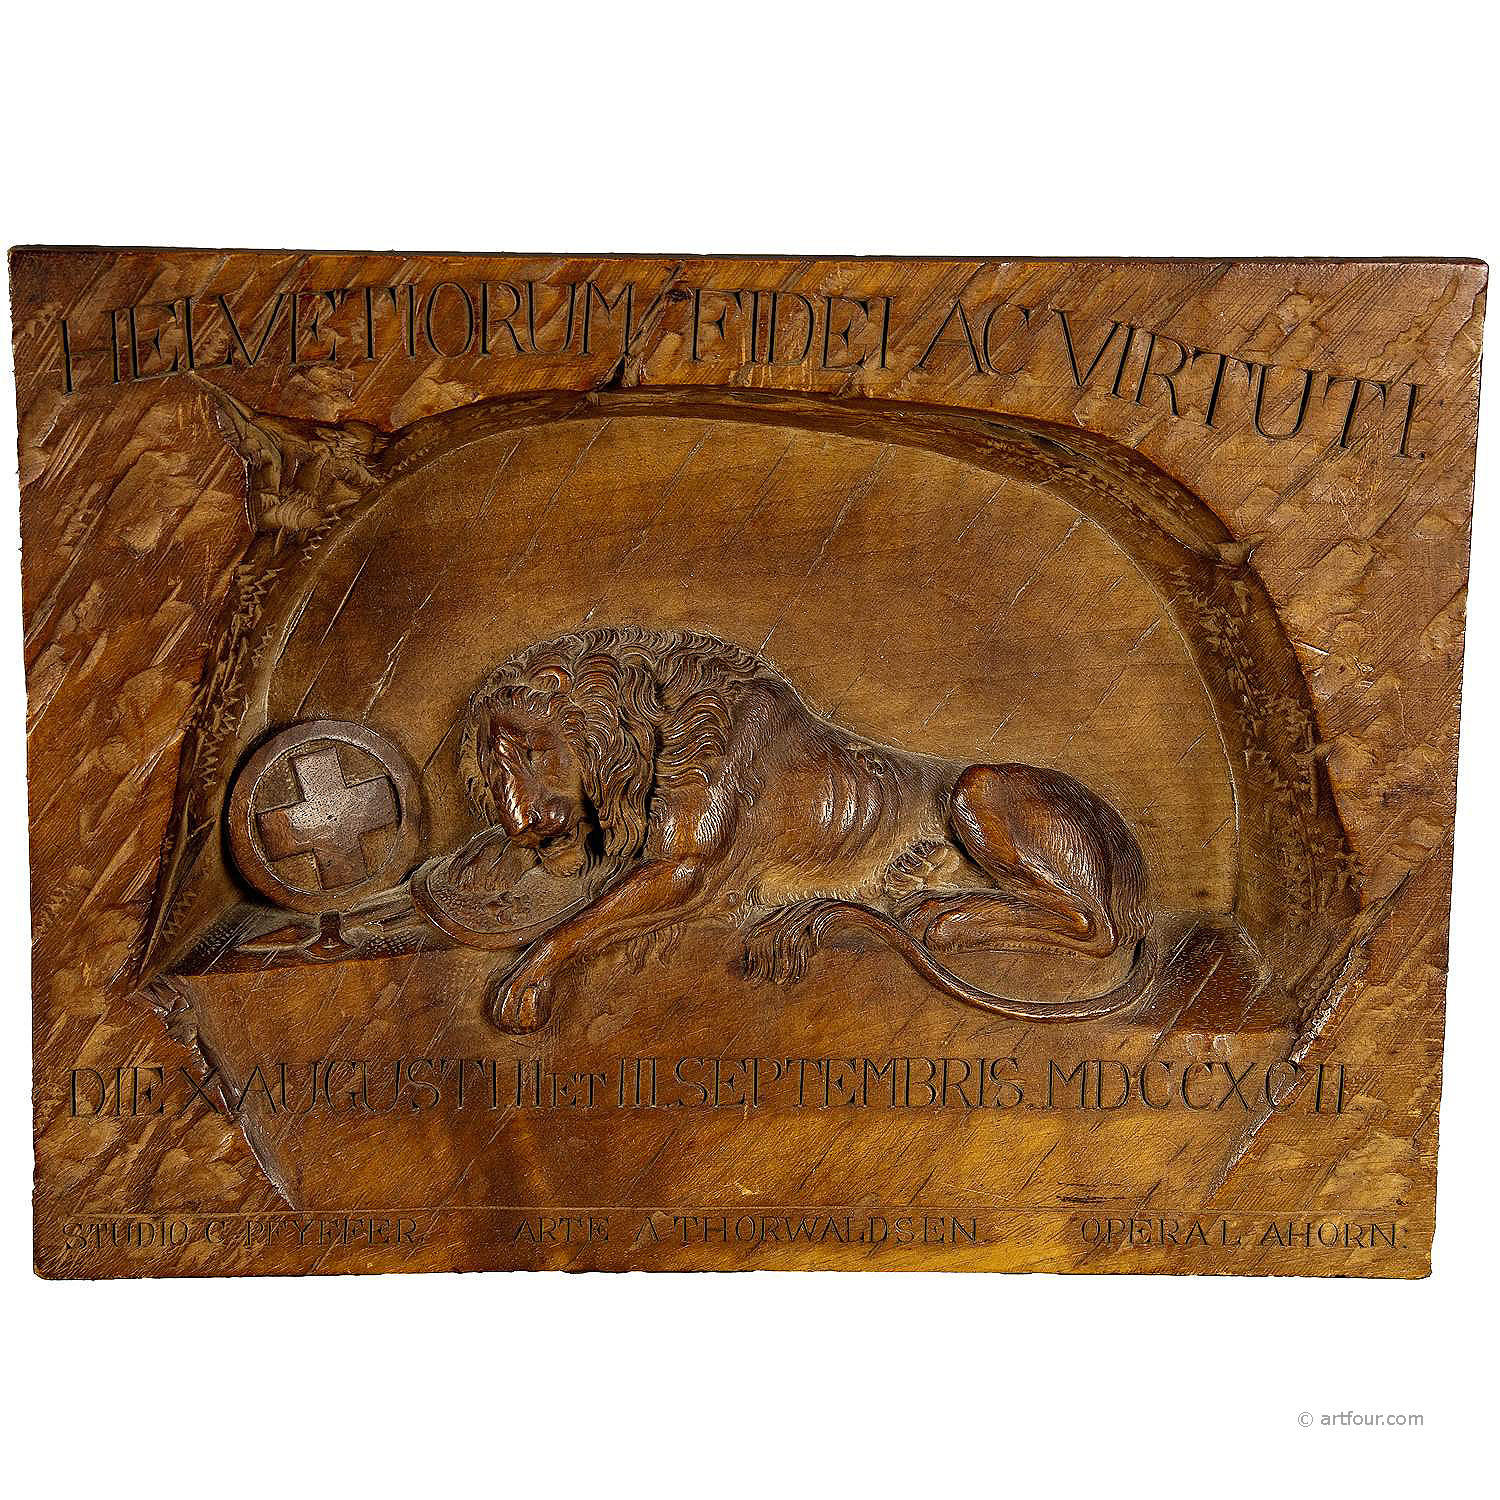 swiss lion relief carving ca. 1900